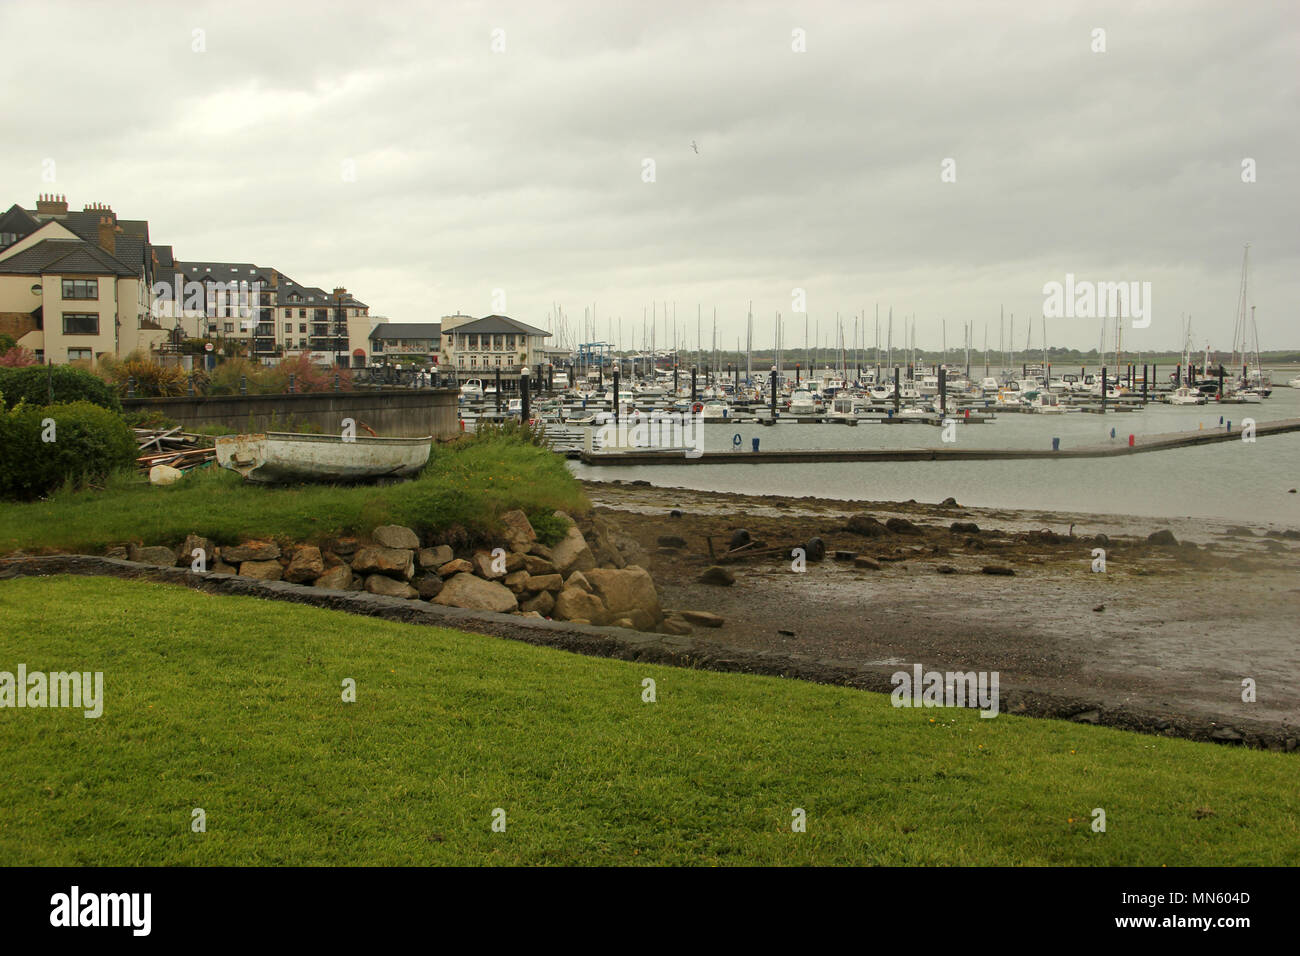 Malahide Harbour, Co. Dublin, Ireland - Stock Image